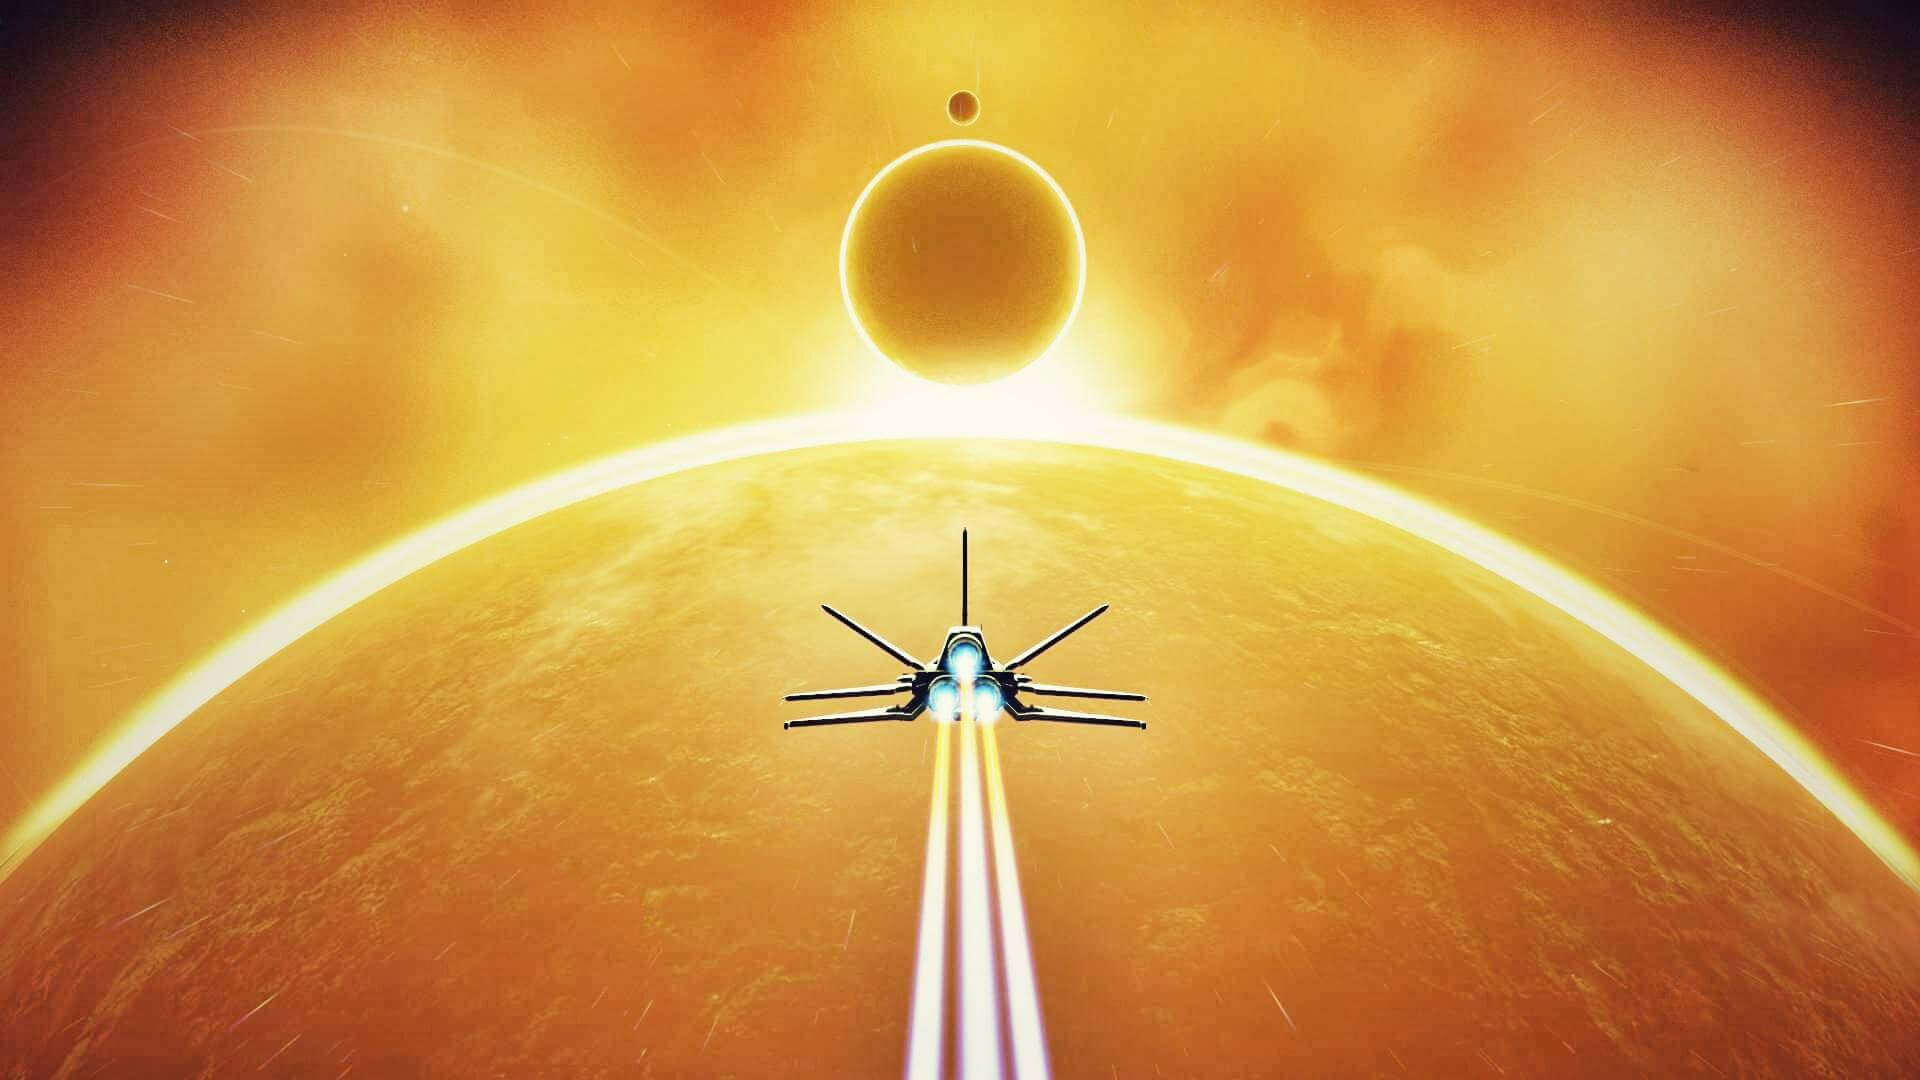 No Man's Sky Beyond Saw Over 2 Million Players Within One Week